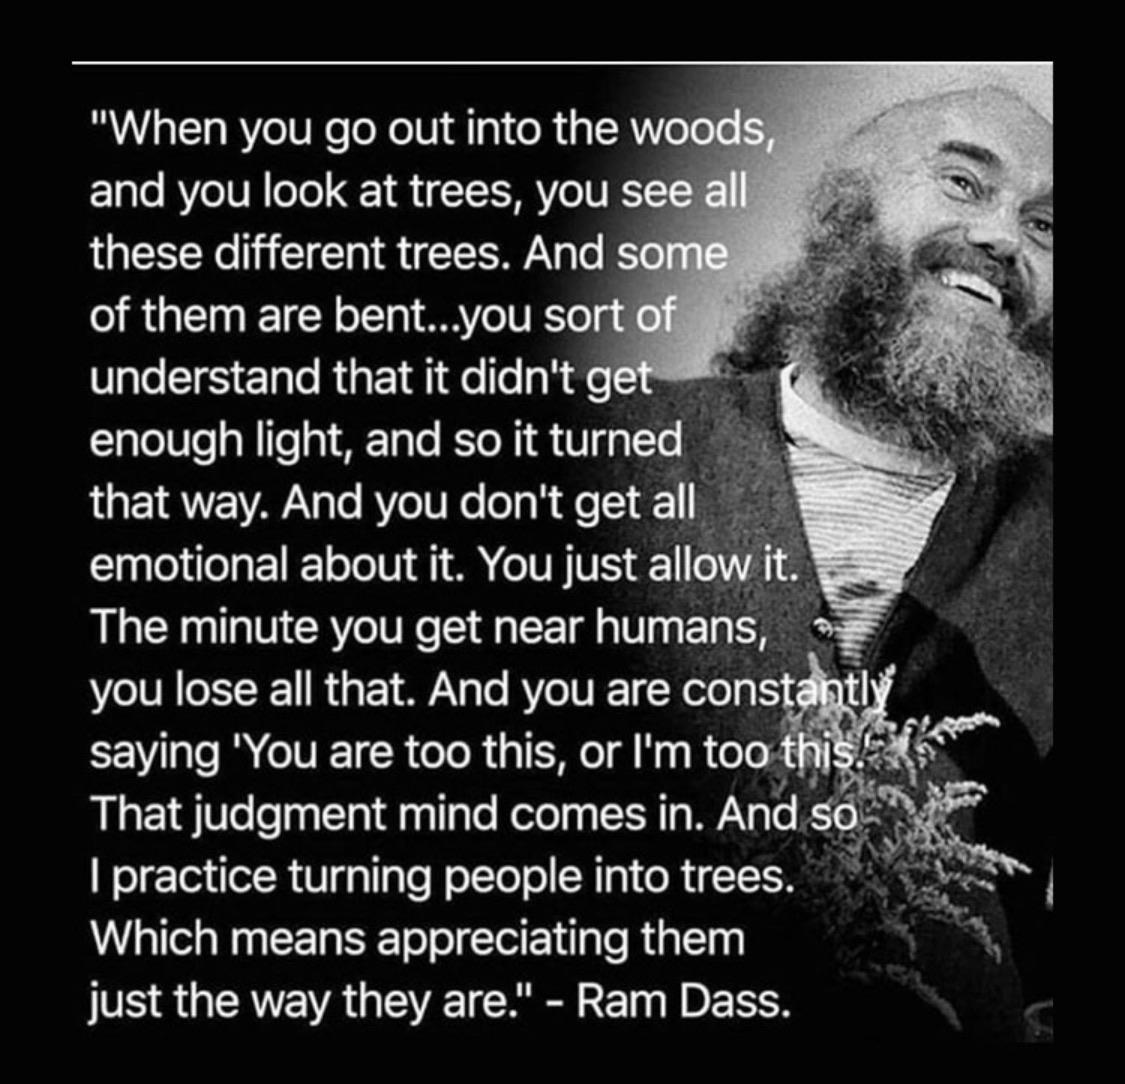 So I practice turning people into trees. Which means appreciating them just the way they are. – Ram Dass [Image]